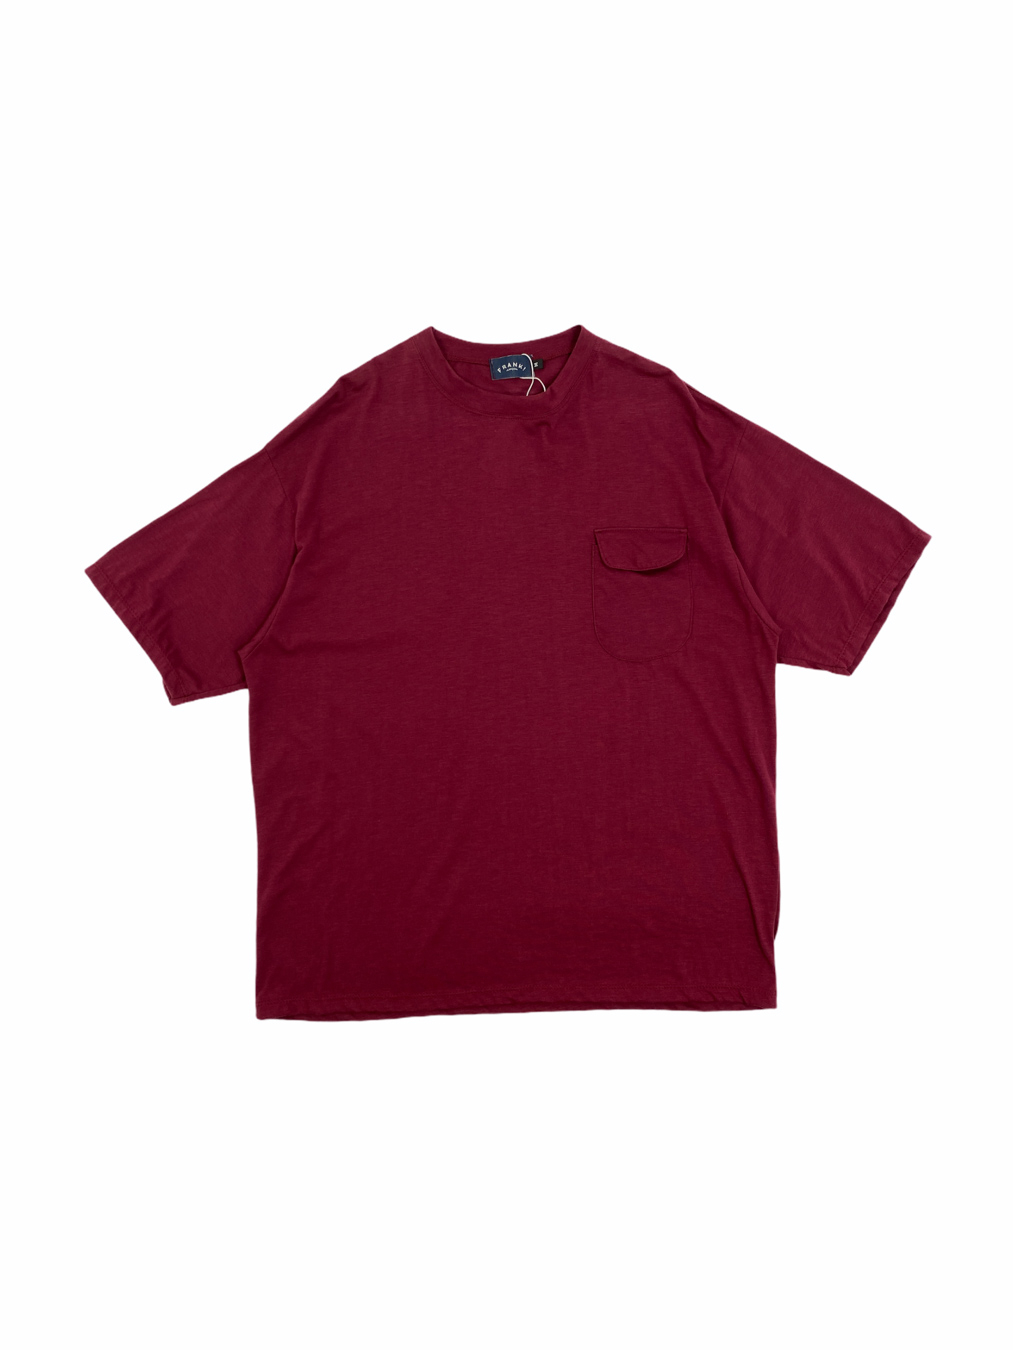 New Round Pocket Tee (Red)